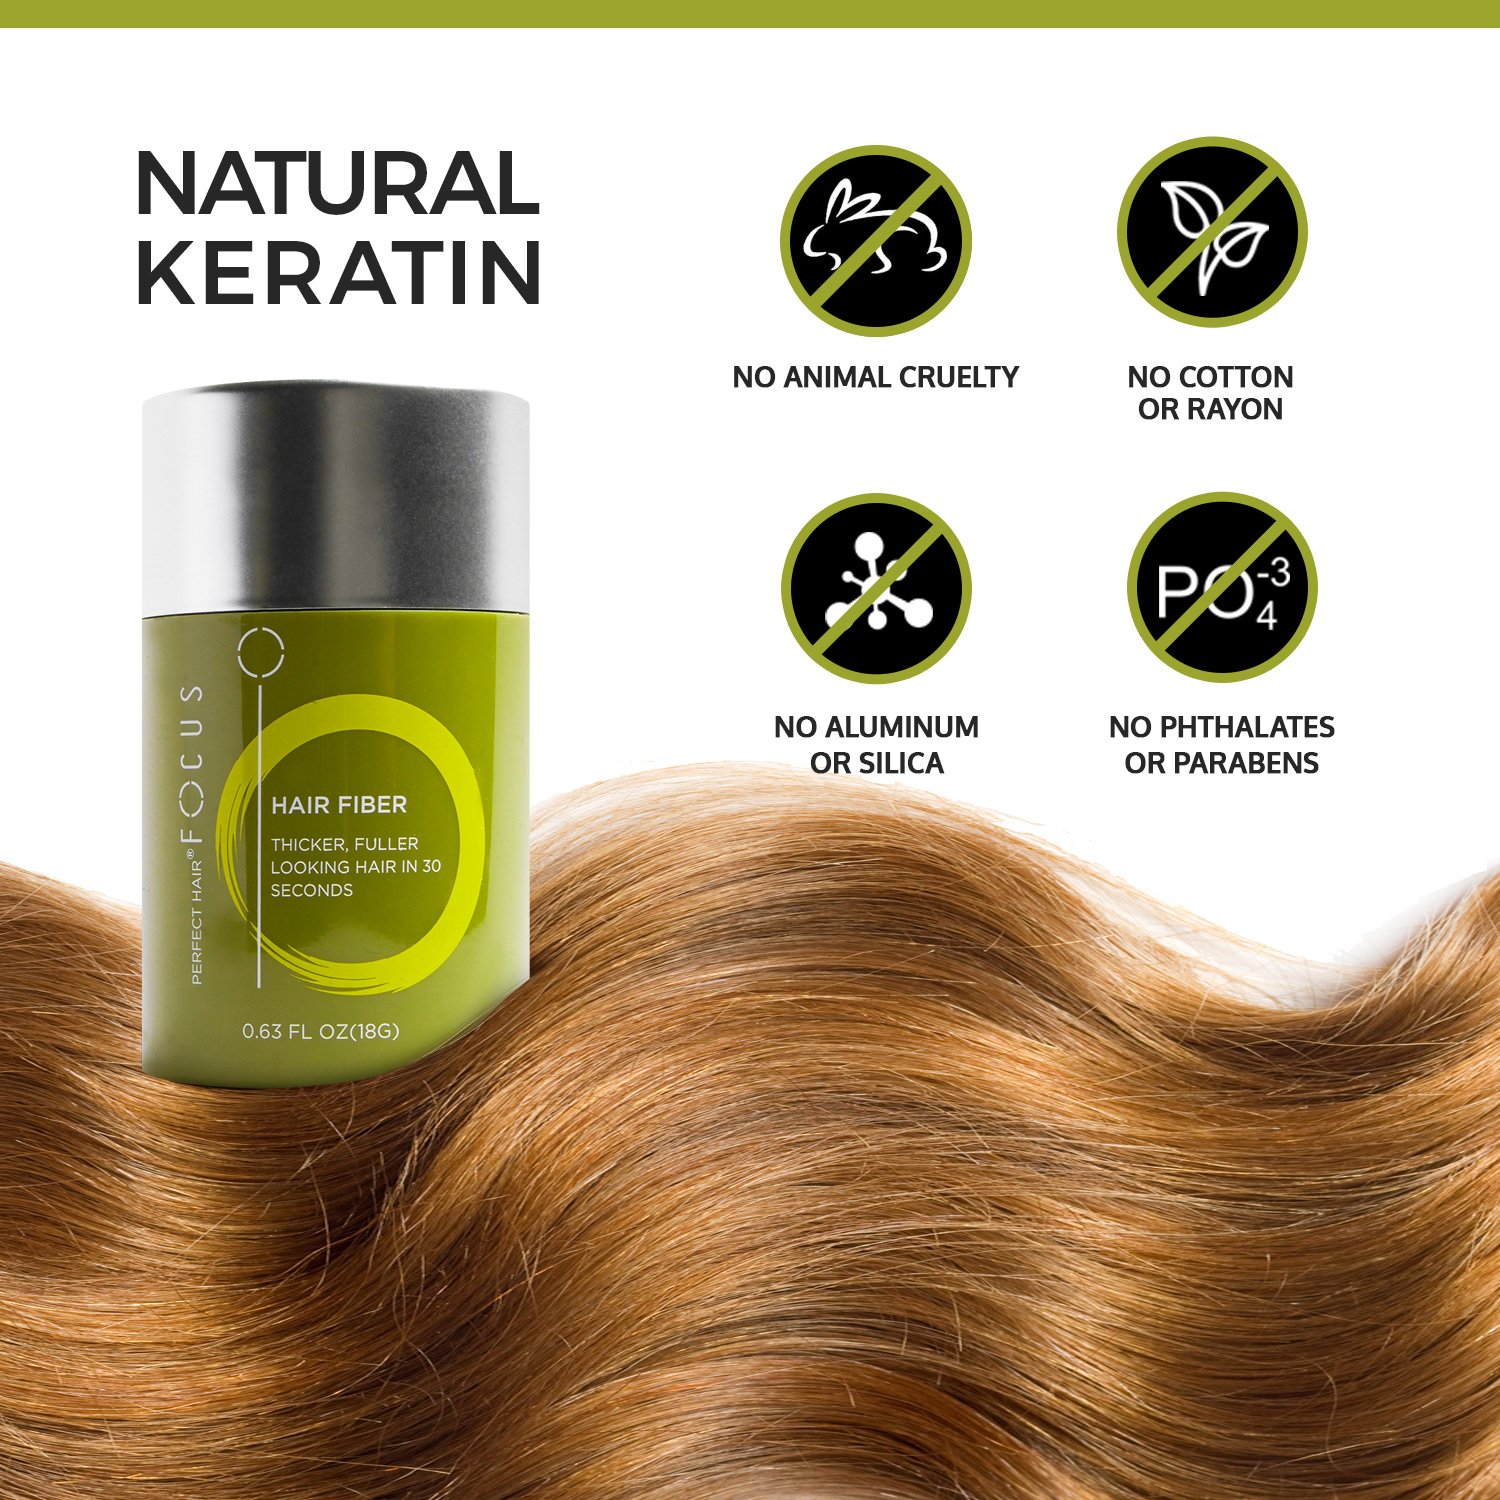 Hair Fibers for Thinning Hair - Volumizing Hair Fillers Are an Undetectable Instant & Safe Root Cover Up - Natural Keratin Protein Adds Texture to Sparse Hair - 18g / 0.63oz (Medium Brown) by Perfect Hair (Image #6)